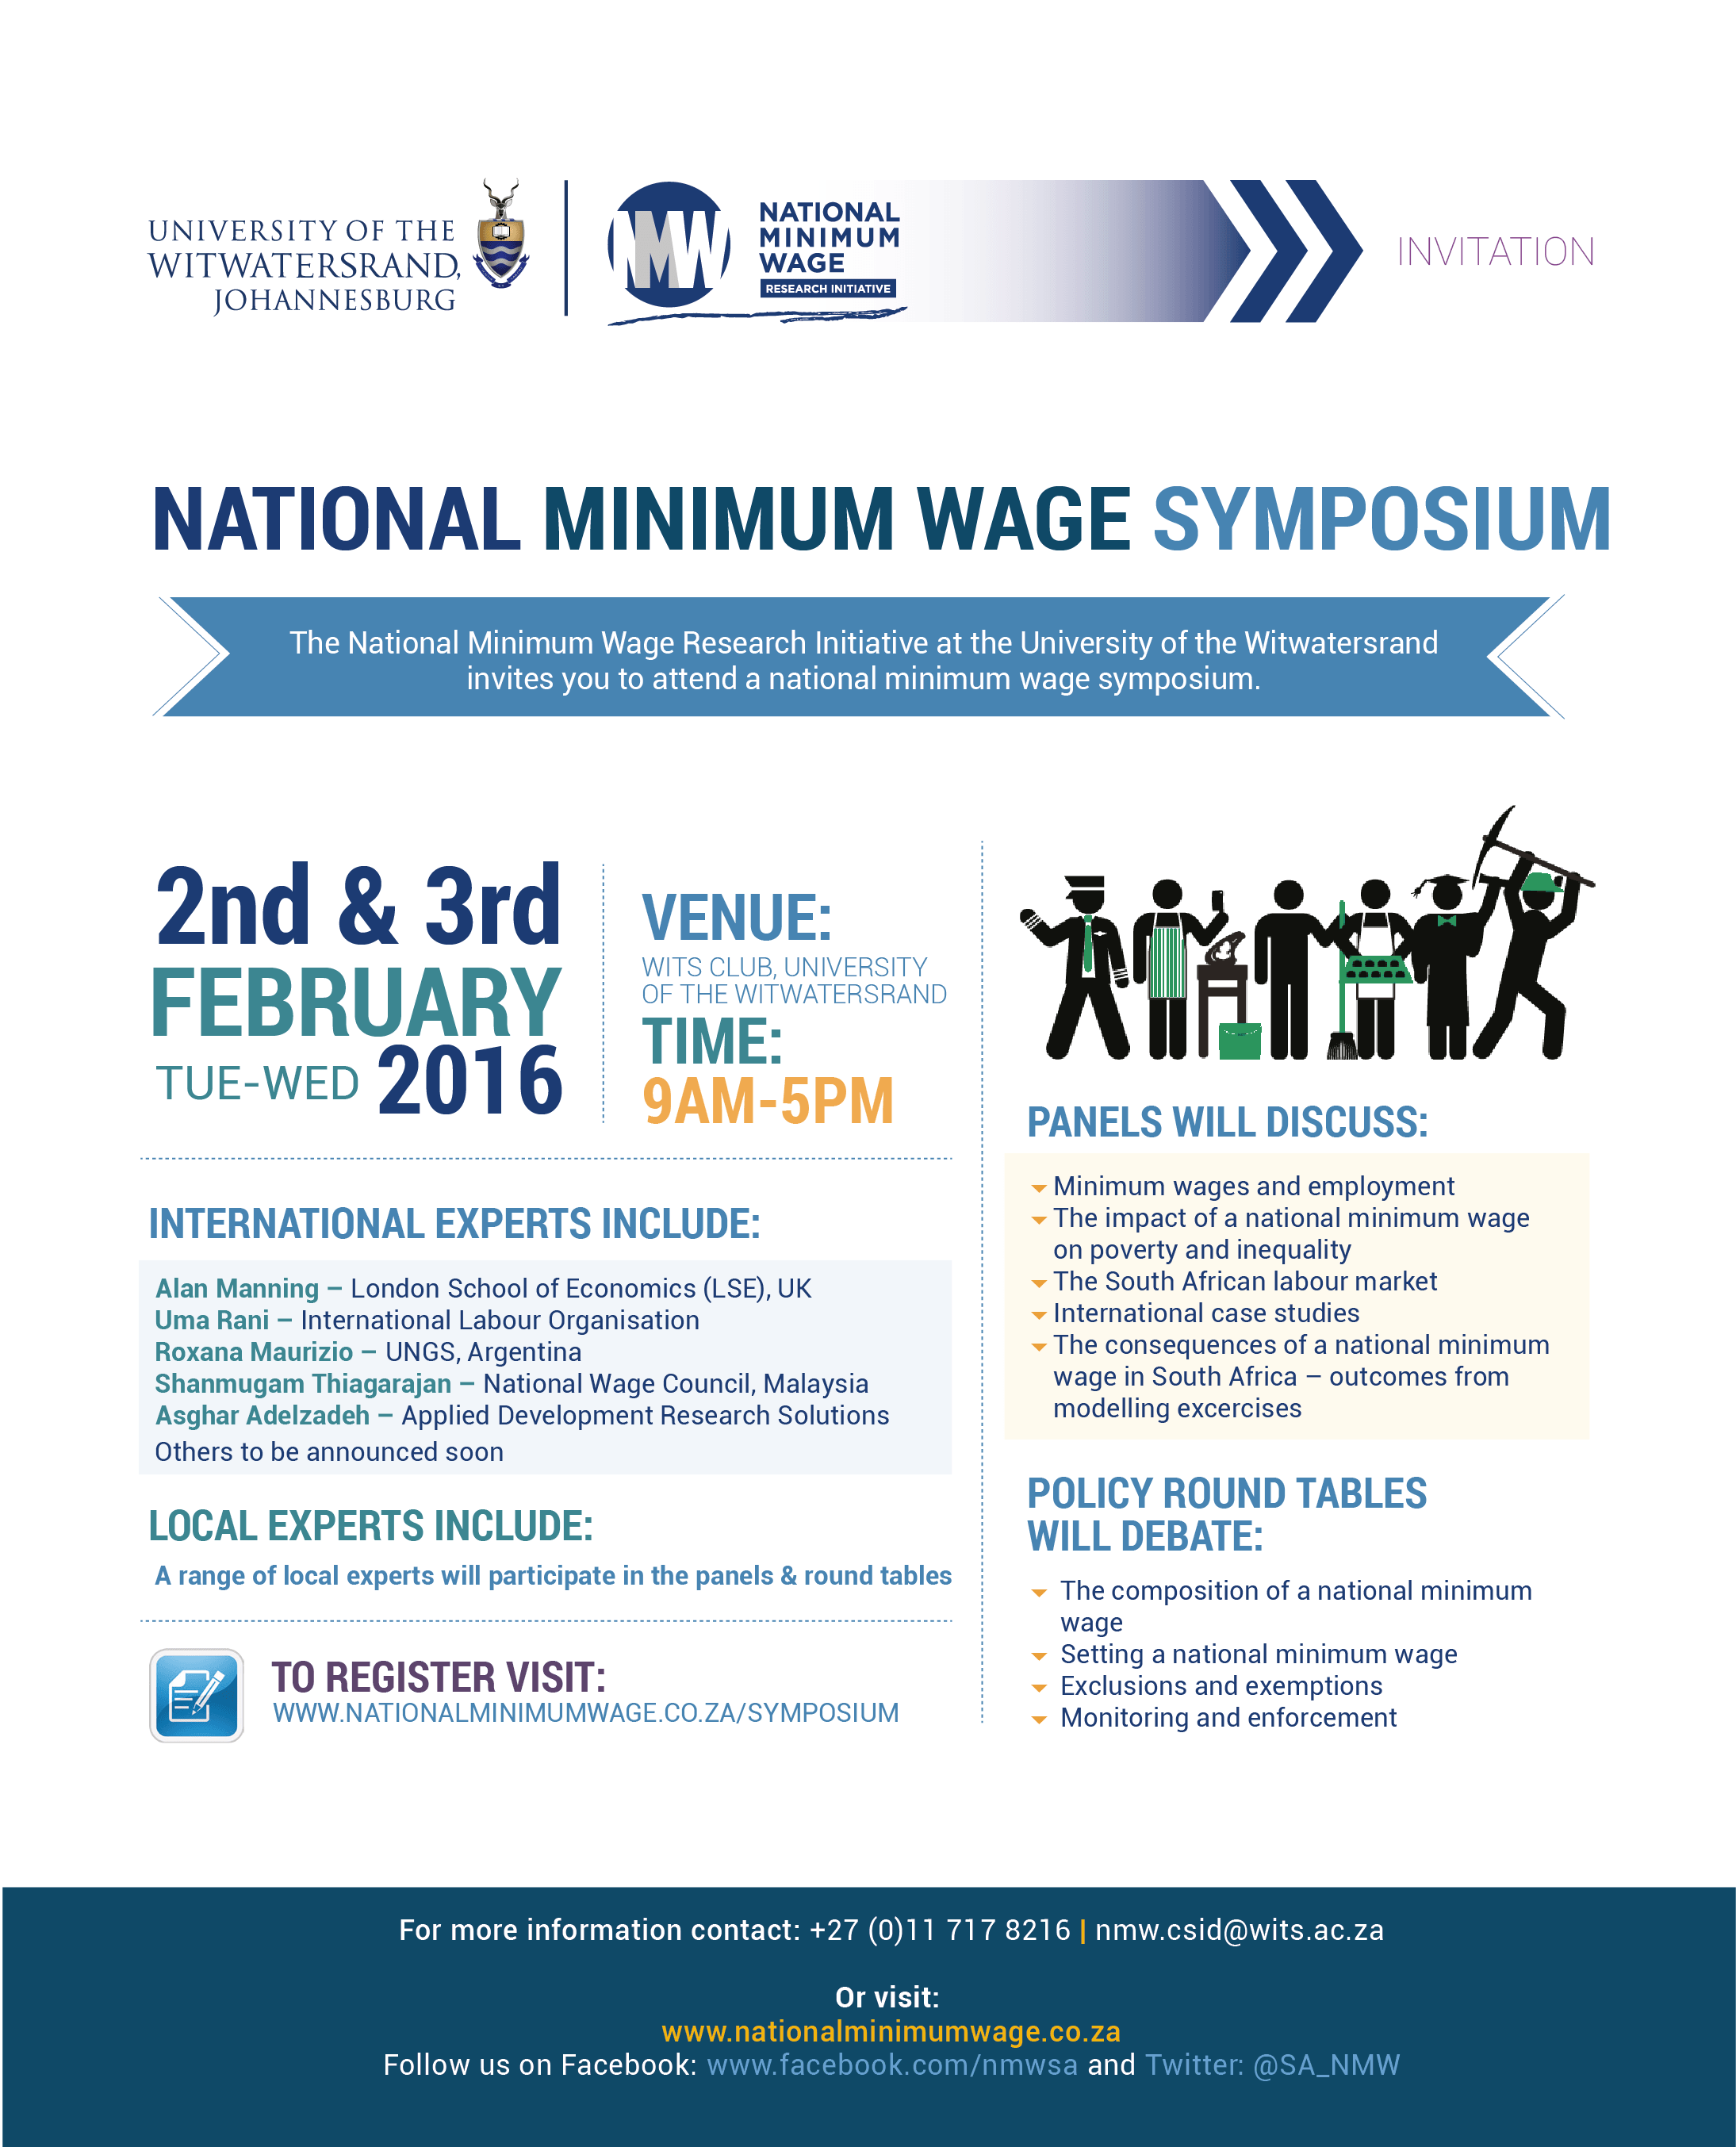 National Minimum Wage National Symposium invite 101min